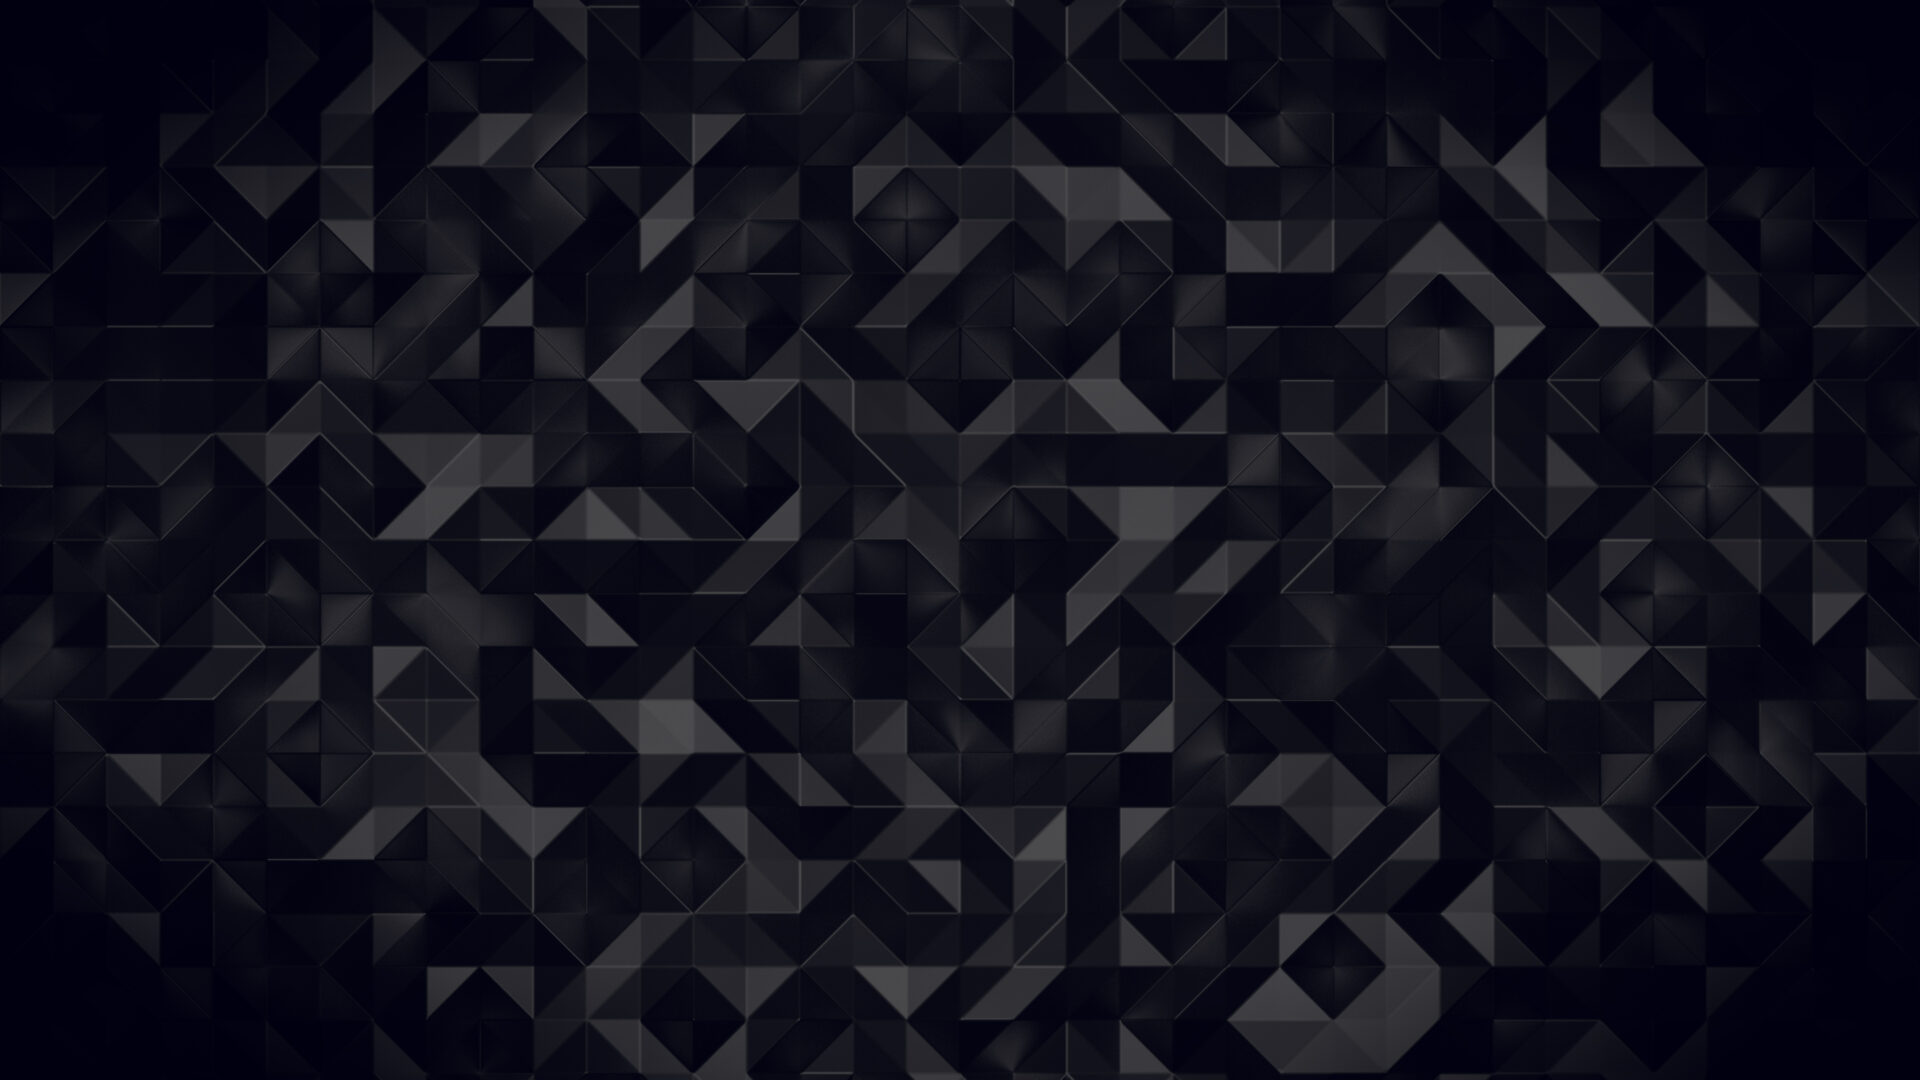 Wallpaper Darkness Triangles 4K Spirals